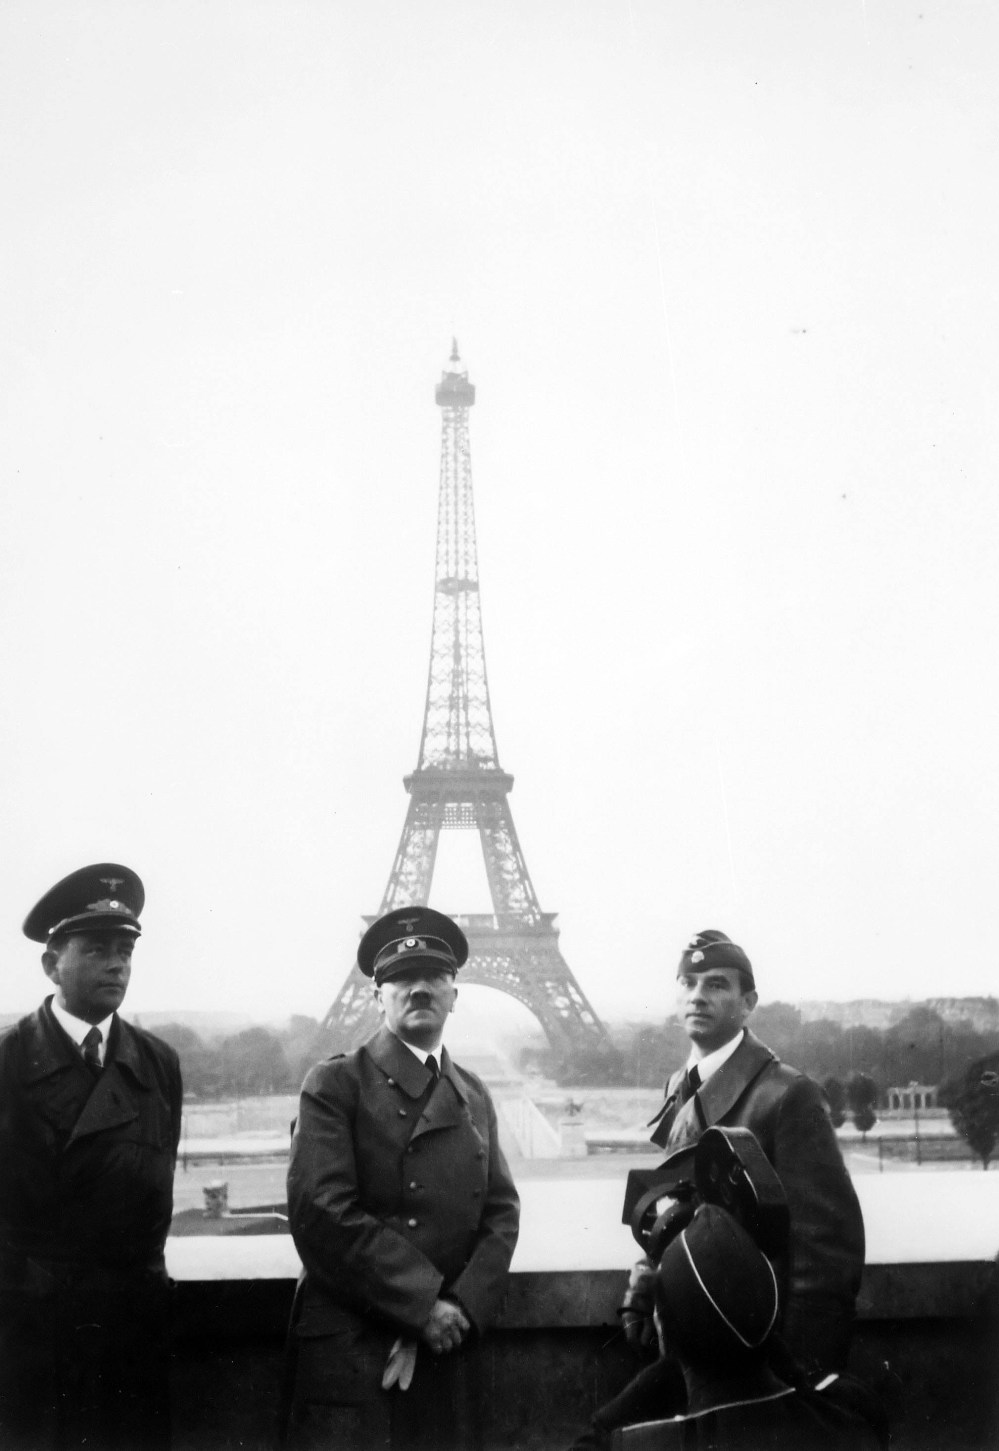 medium resolution of hitler visits paris with architect albert speer left and sculptor arno breker right 23 june 1940